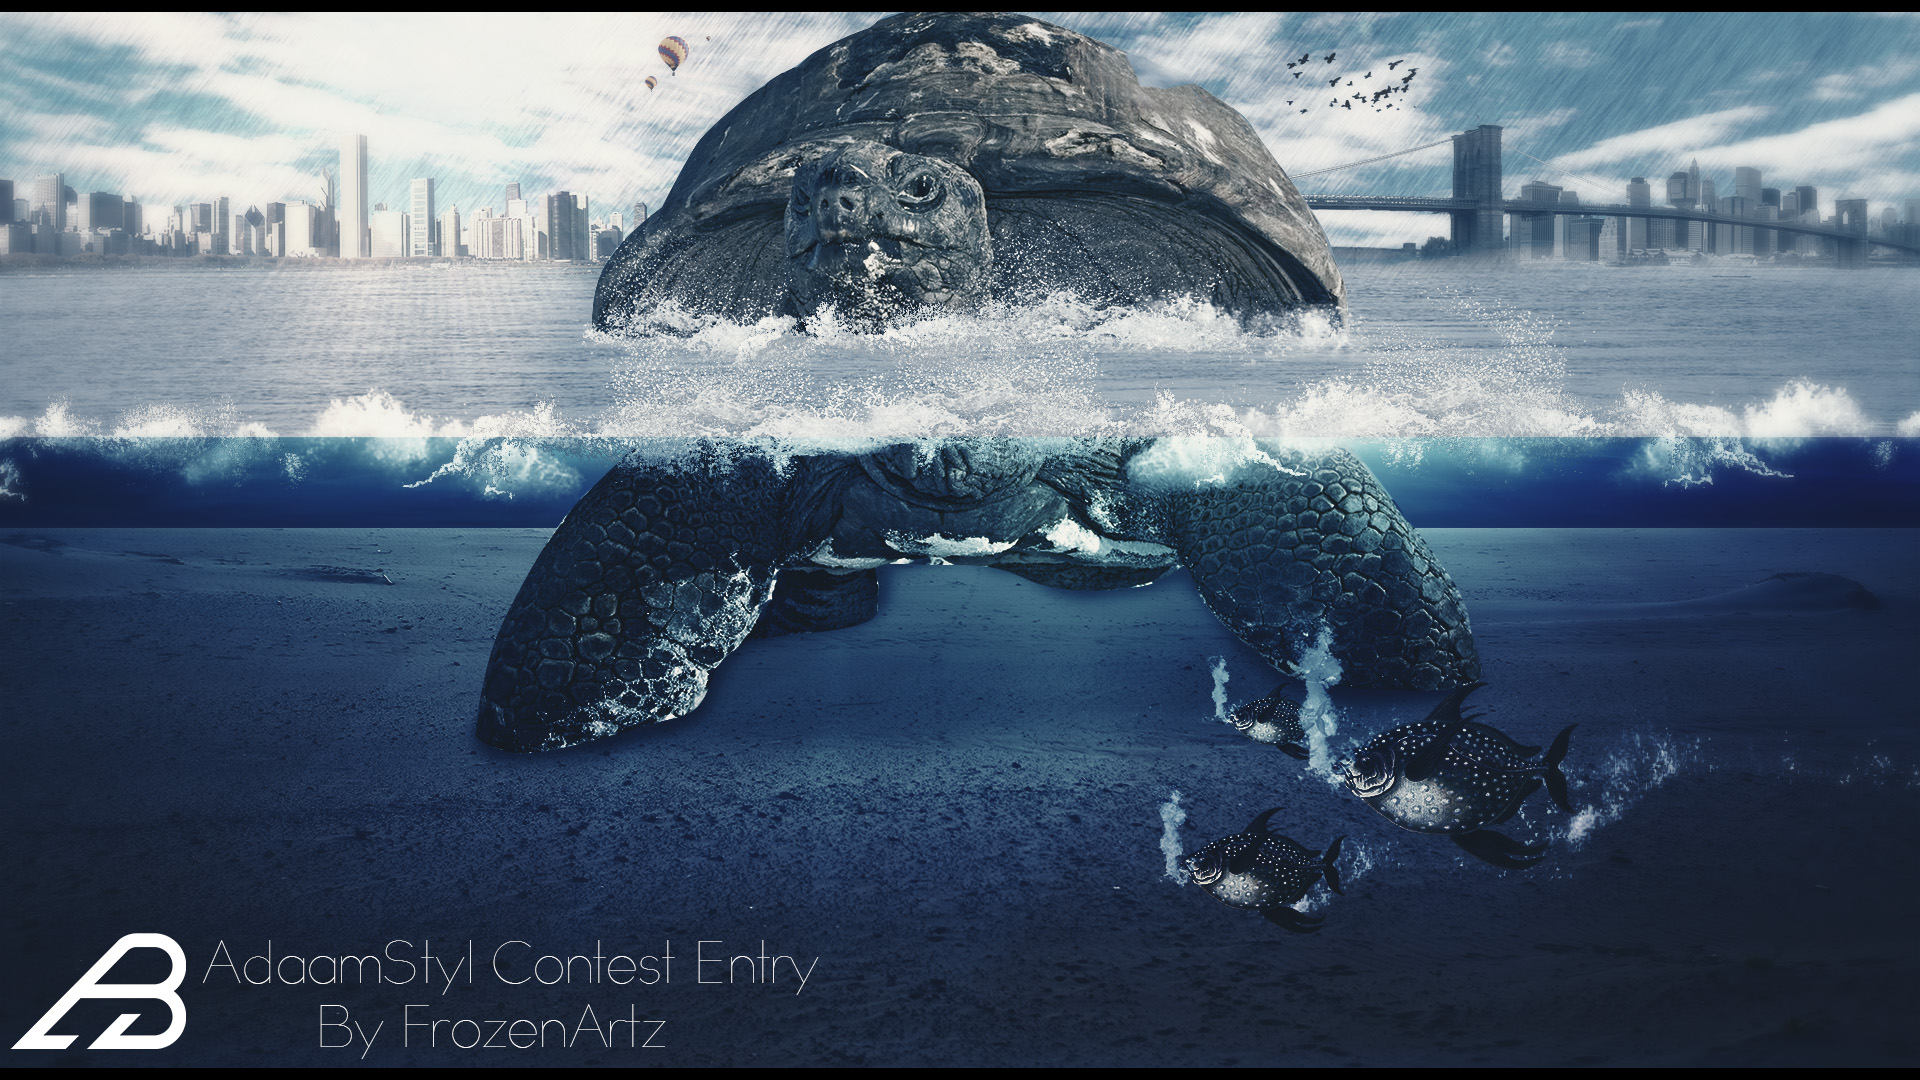 The Big Turtle! AdaamStyl Contest Entry